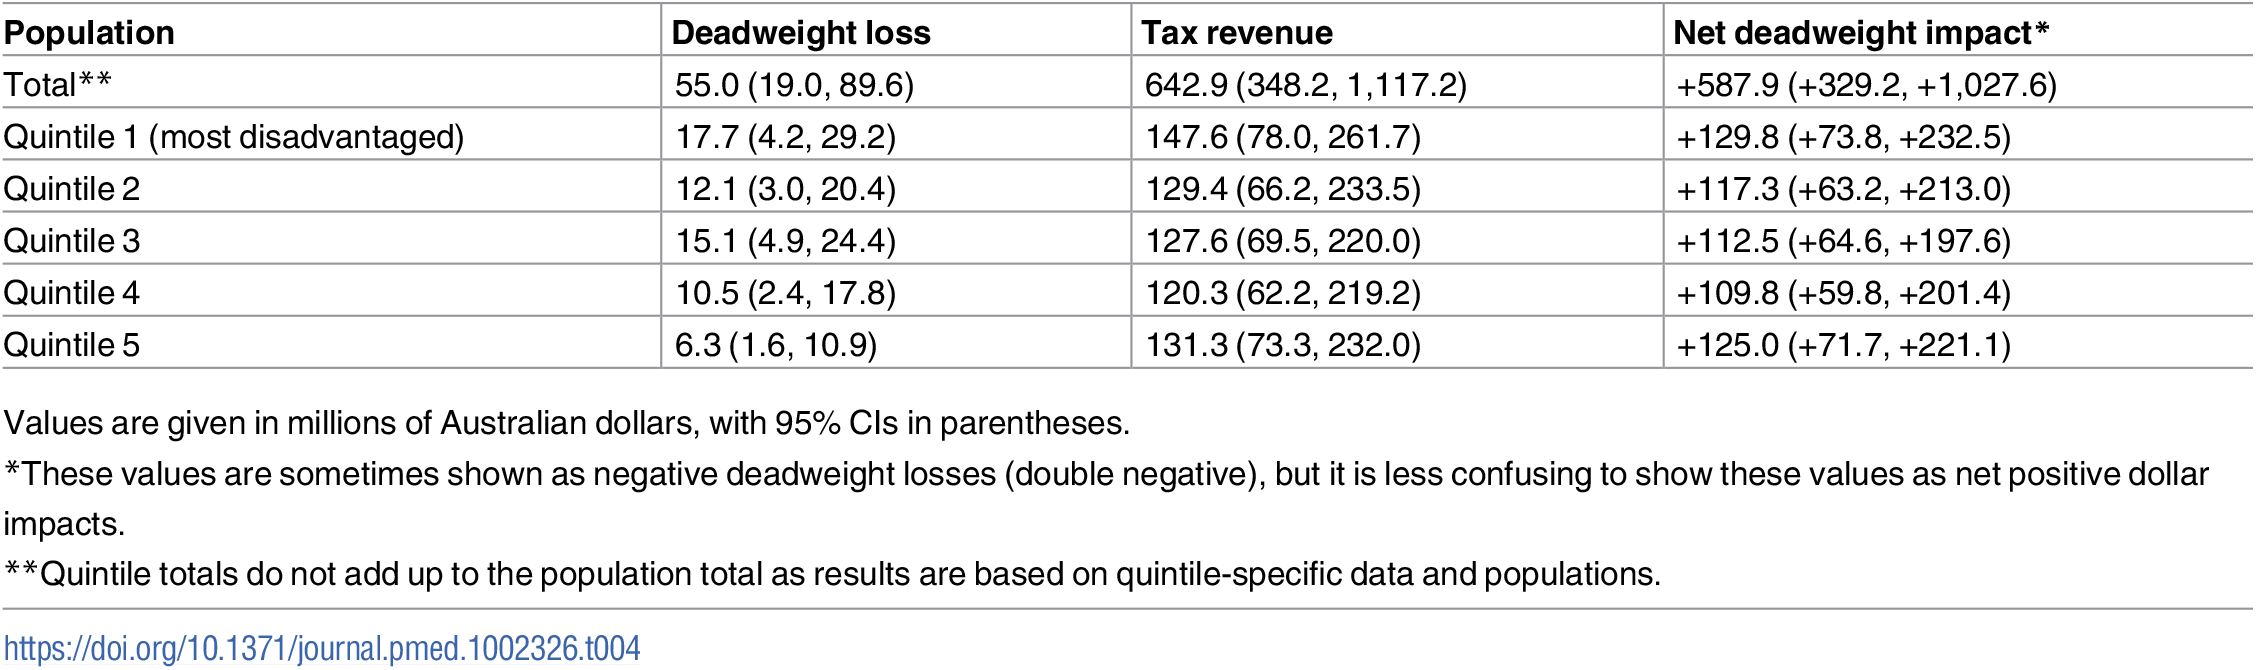 Estimated net deadweight impact of a 20% tax on sugar-sweetened beverages.